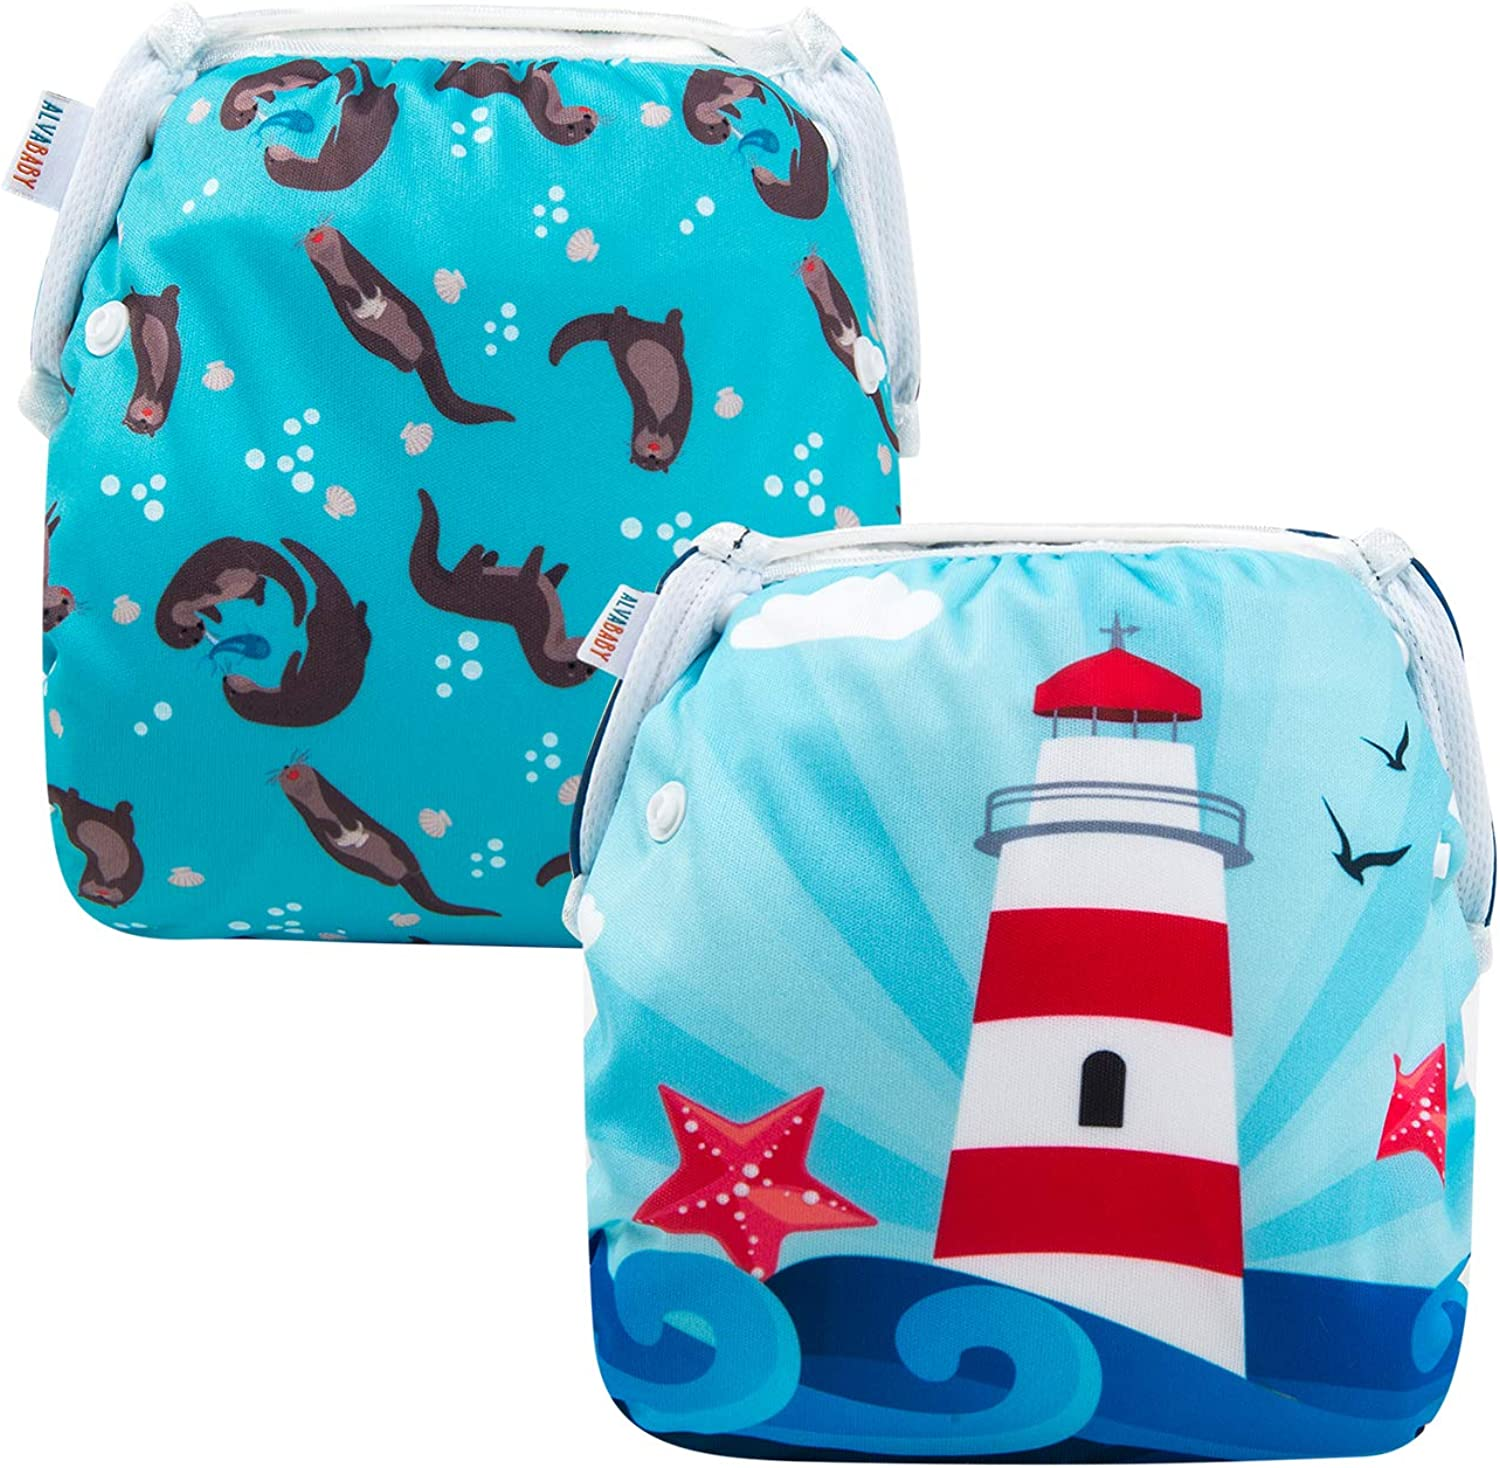 ALVABABY Swim Diapers Reuseable Washable Adjustable 2 PCS Pack One Size